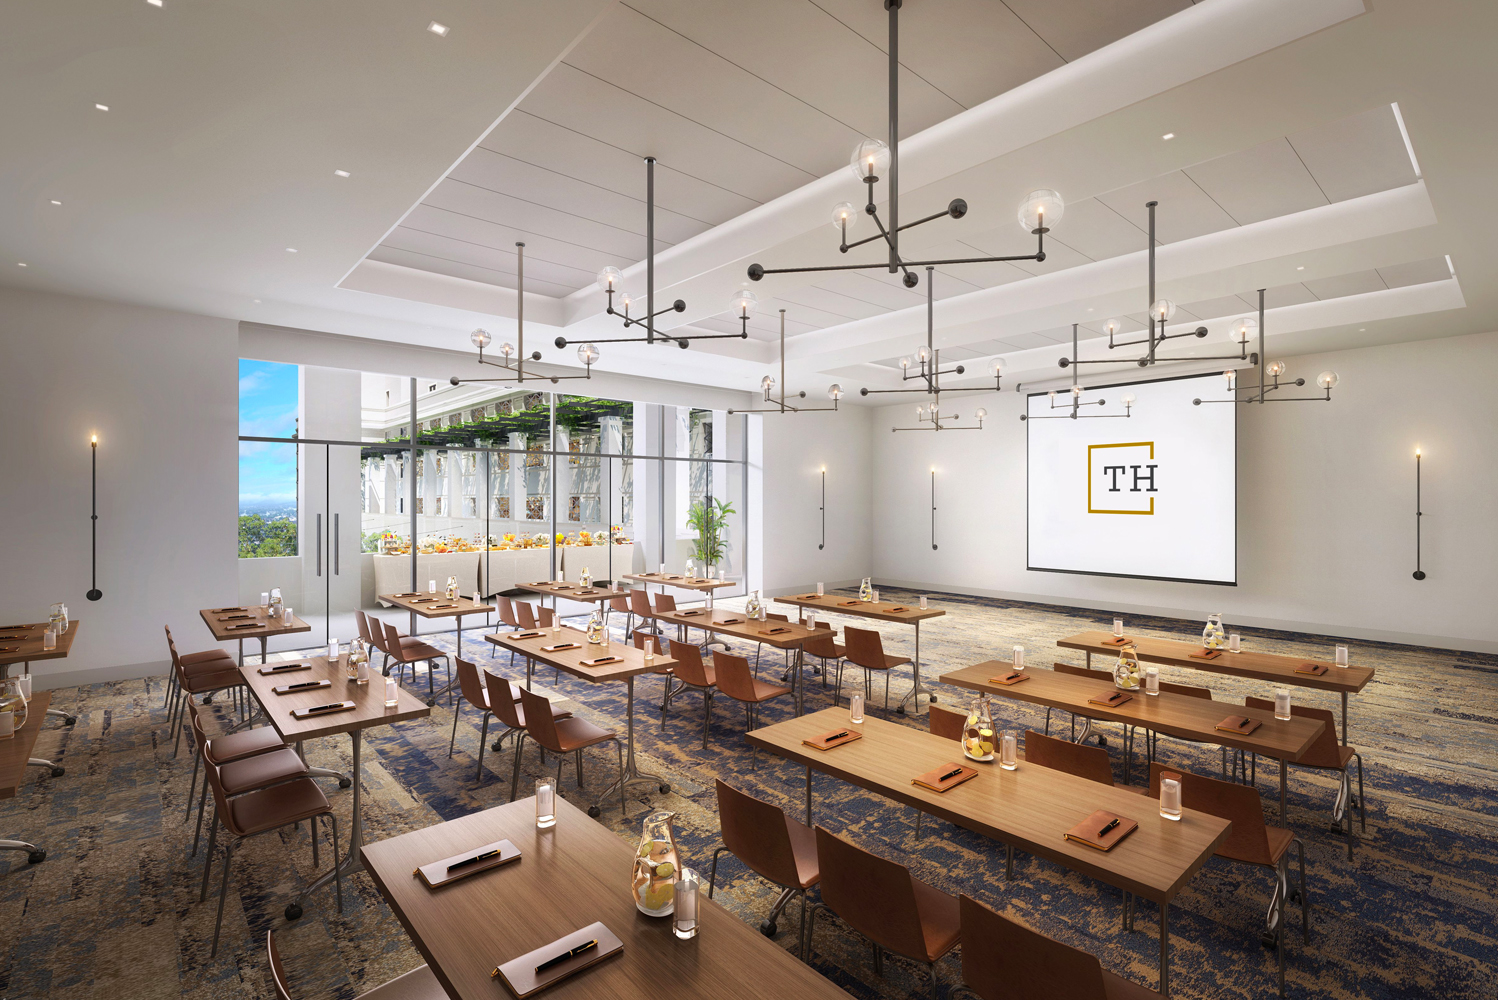 The hotel will offer guests access to a rooftop pool, 6,500 square feet of meetings and events space, complimentary Wi-Fi and community-inspired programming.